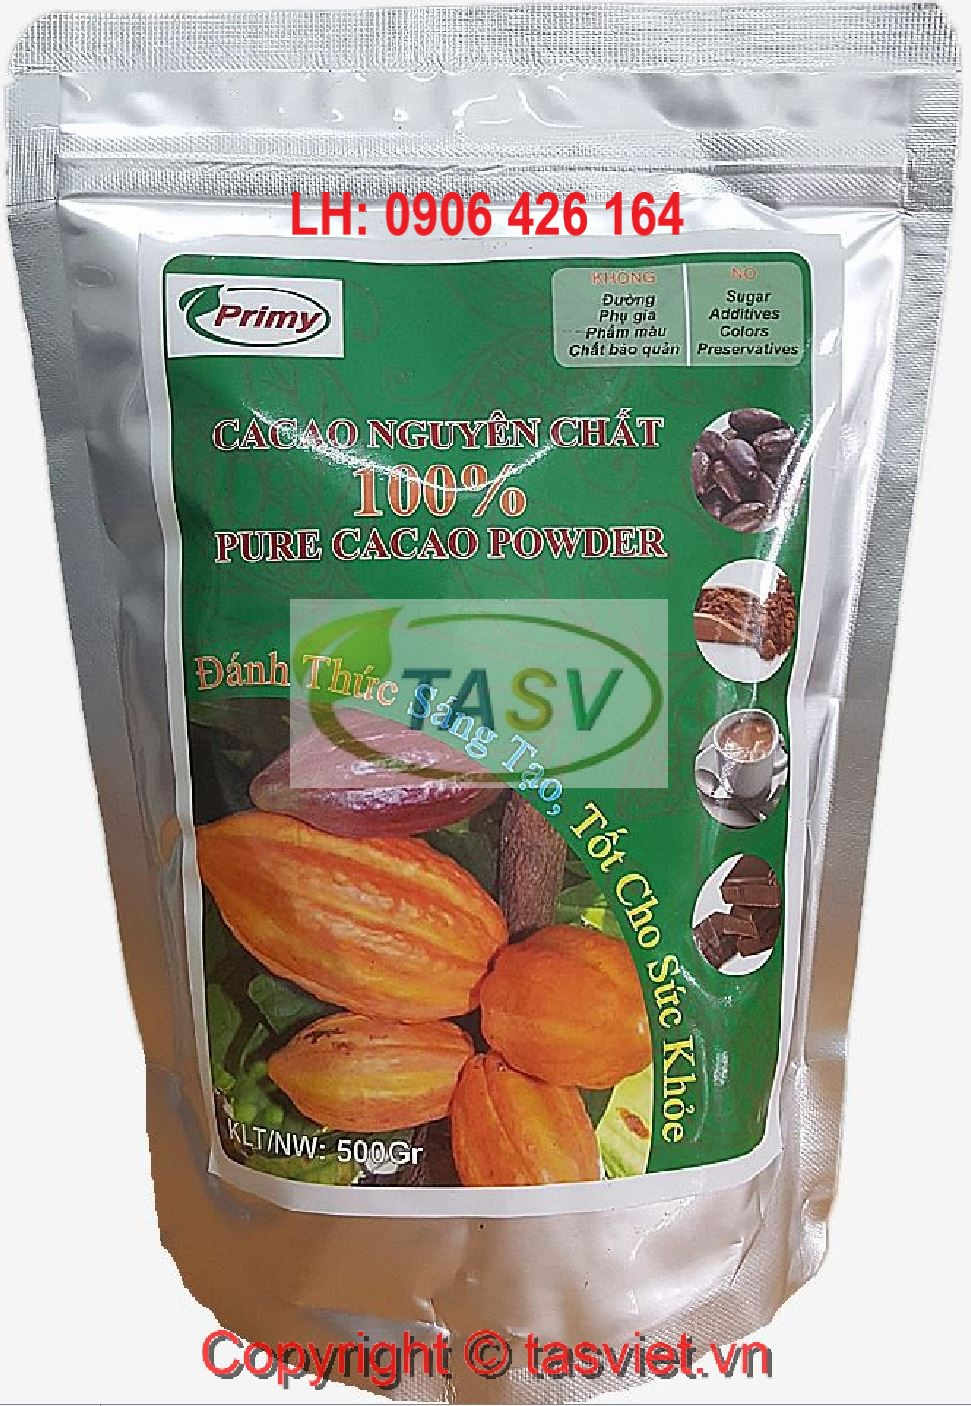 BỘT CACAO NGUYÊN CHẤT 100%/PURE CACAO POWDER PRIMY